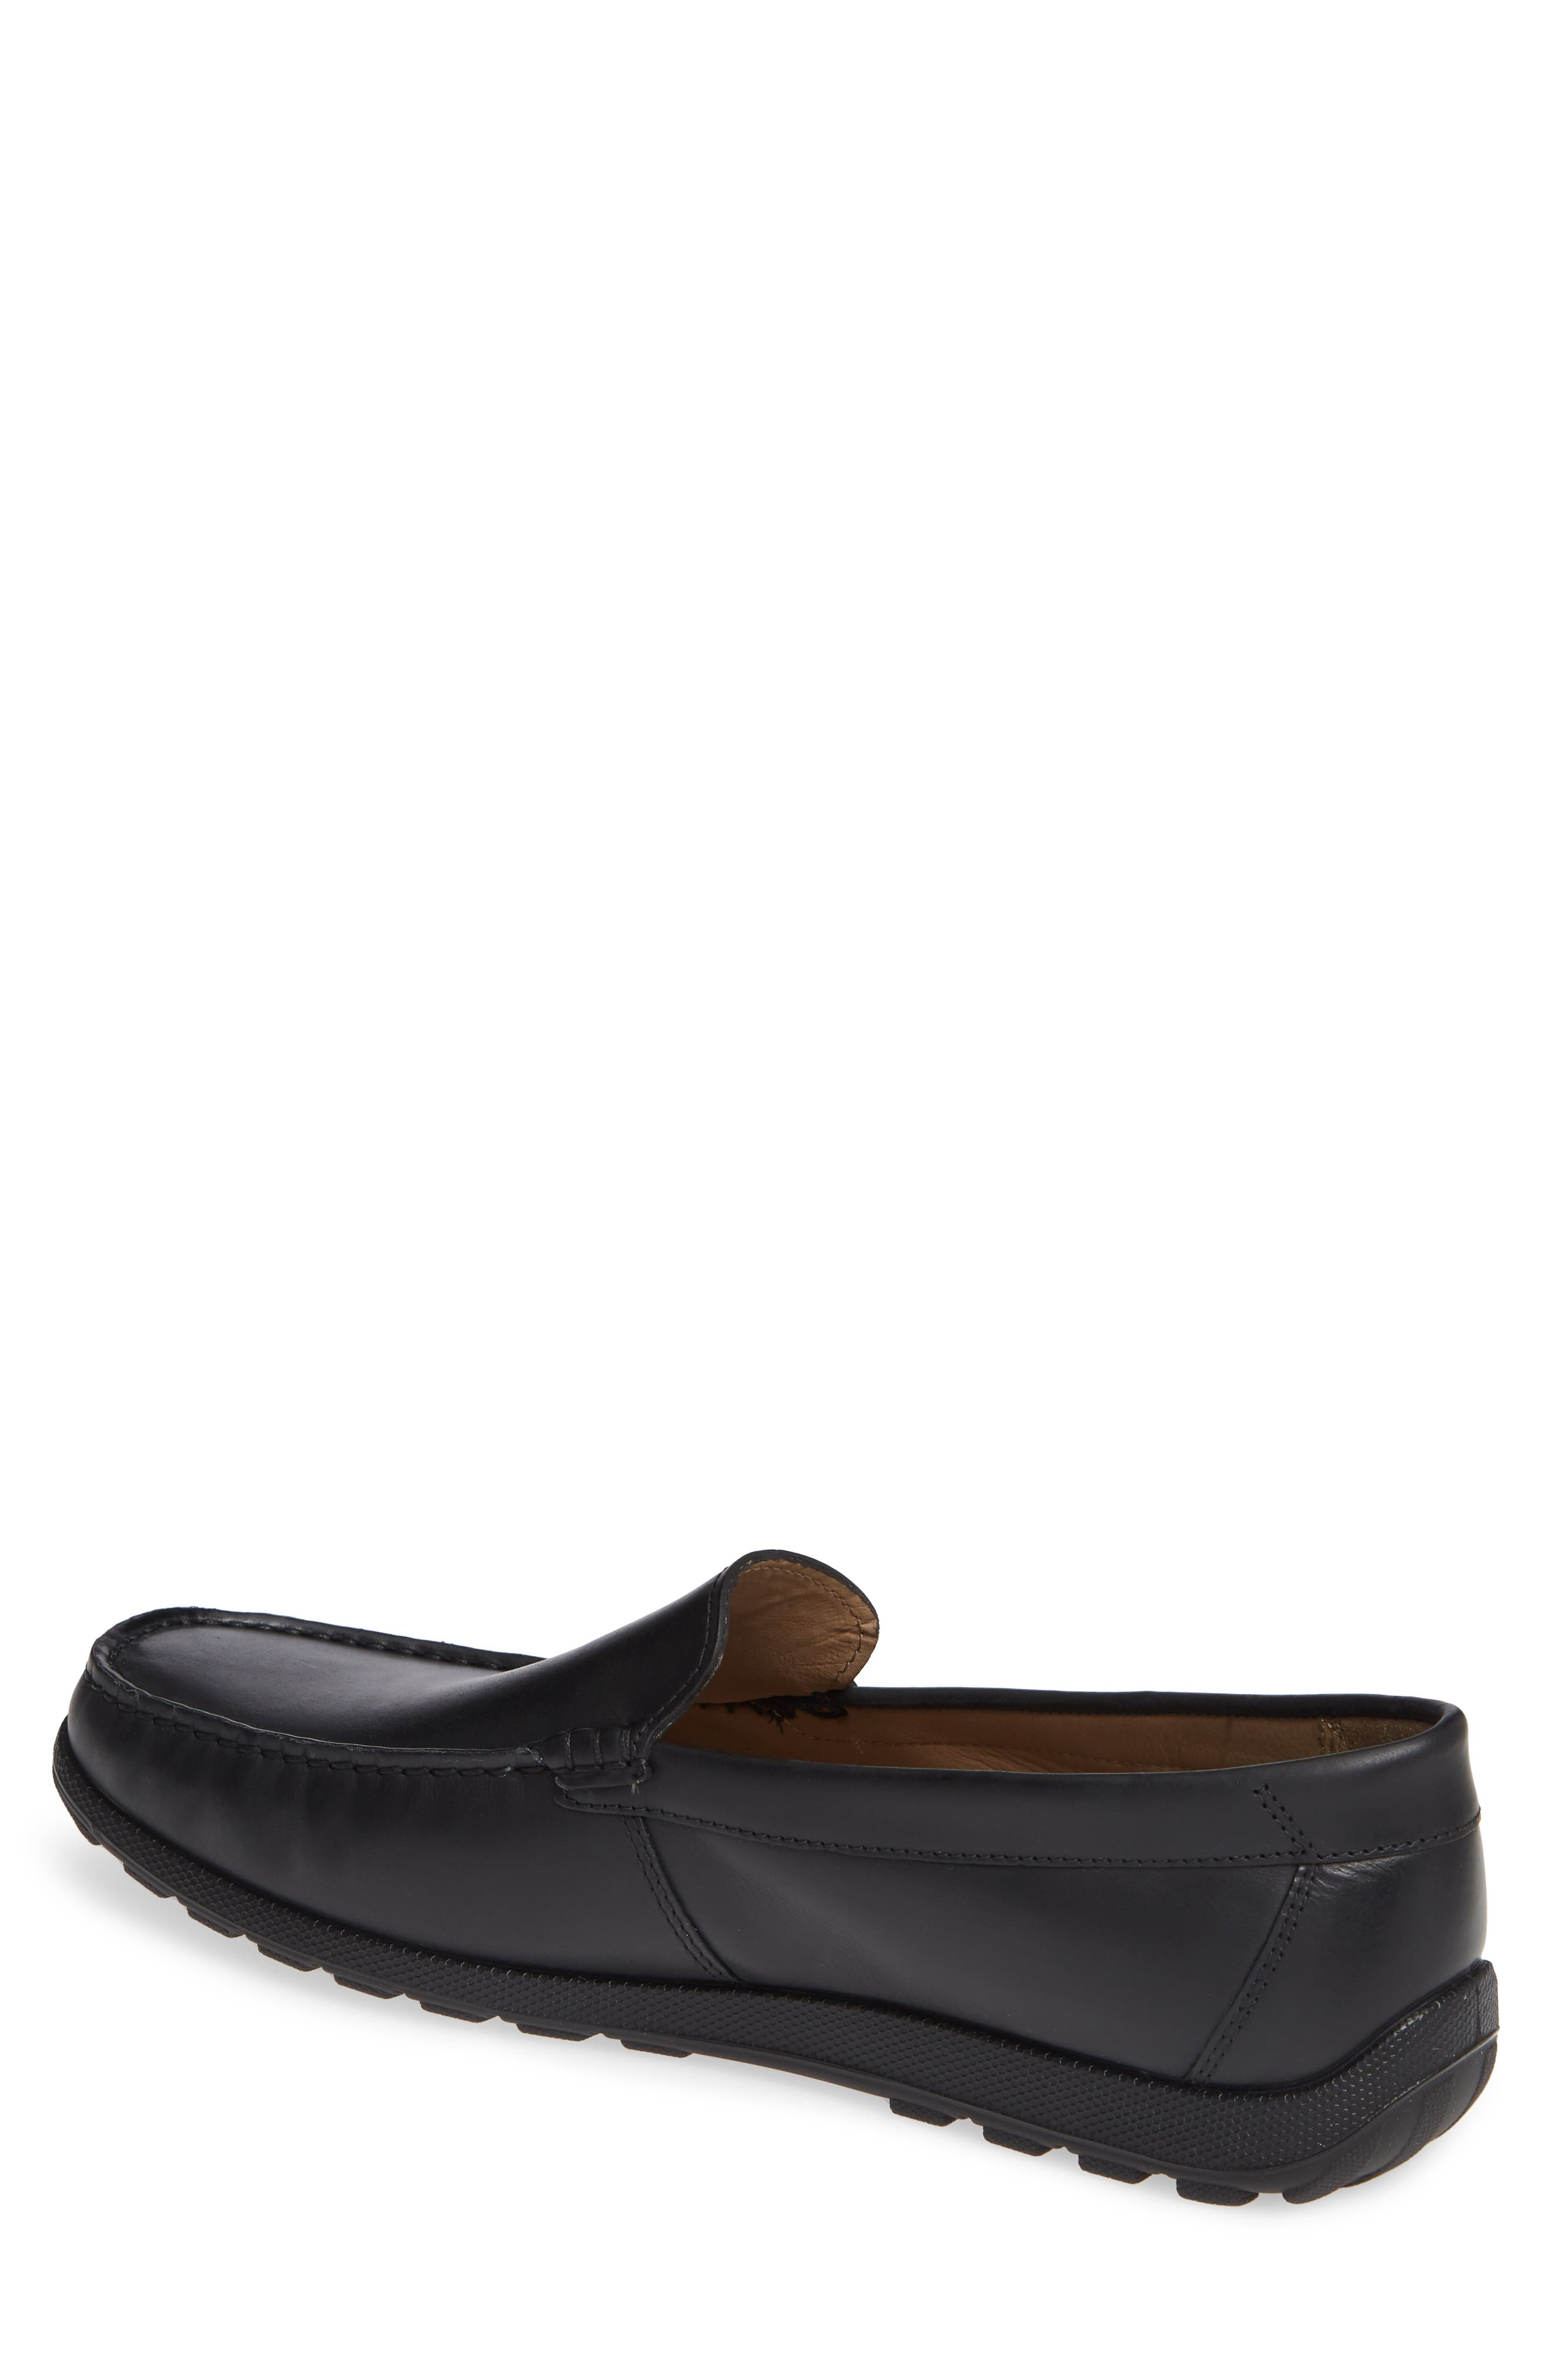 ECCO, Dip Moc Toe Driving Loafer, Alternate thumbnail 2, color, BLACK LEATHER